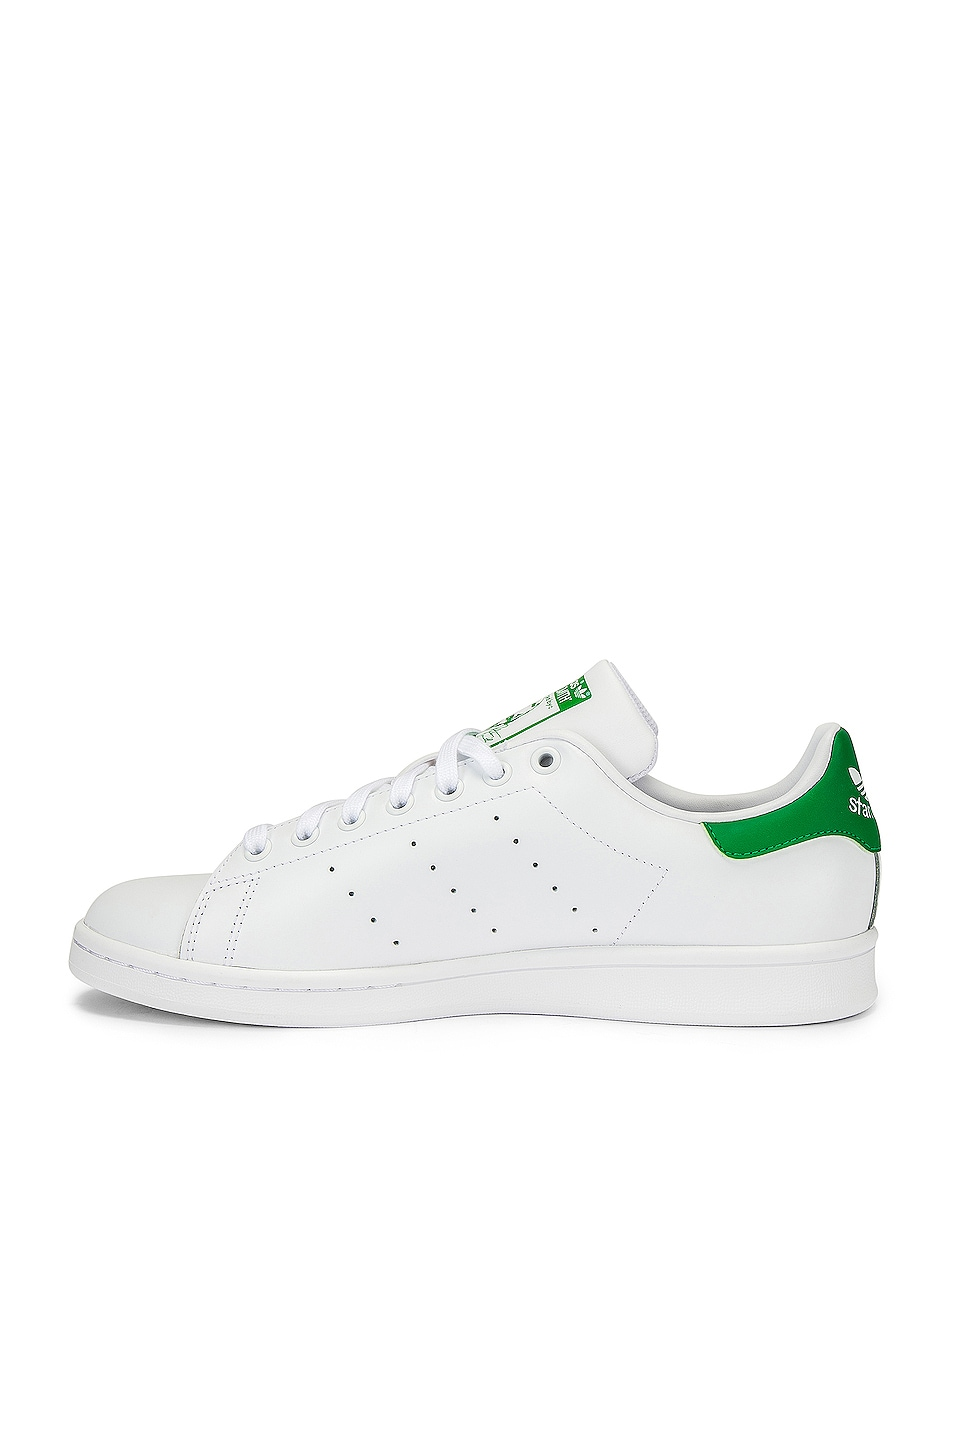 Image 5 of adidas Originals Stan Smith in White & Green